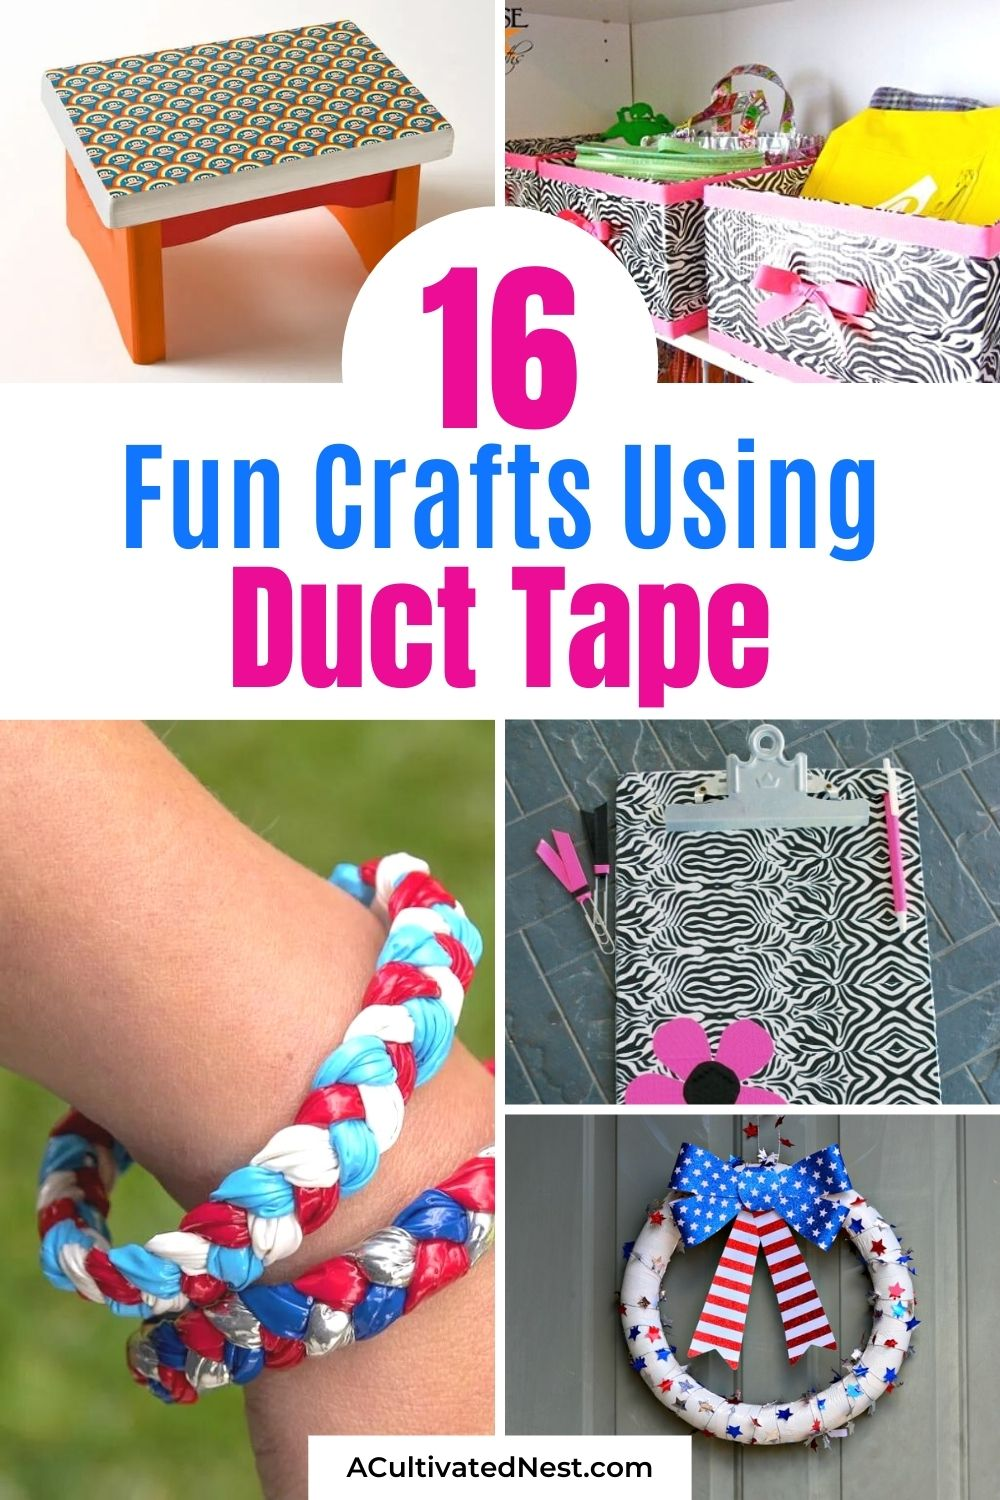 16 Creative Duct Tape Crafts- If you want a fun and creative way to spend some time, you should make some of these 16 creative duct tape crafts! They are great for kids and adults that want to get busy crafting! | #craftsForTeens #crafting #craftProjects #ductTapeDIY #ACultivatedNest